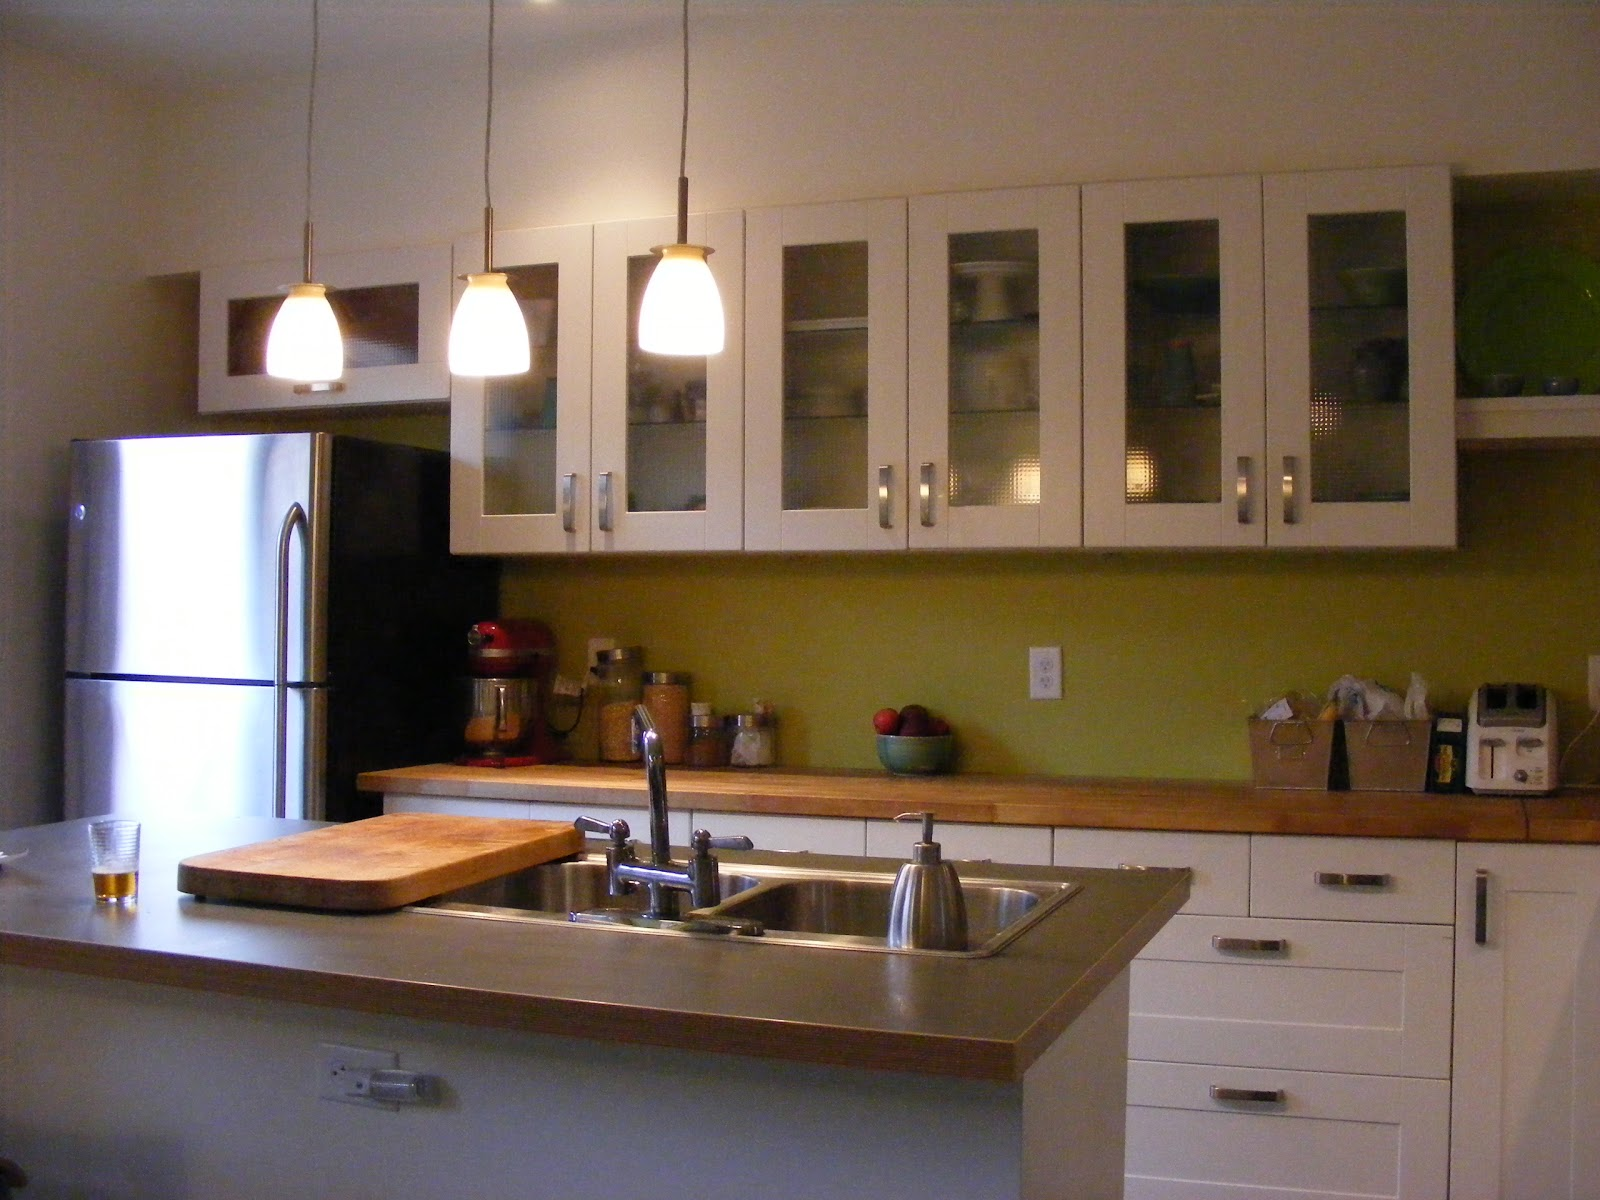 Ikea Kitchen Design Company Our Old Halifax House Buying An Ikea Kitchen